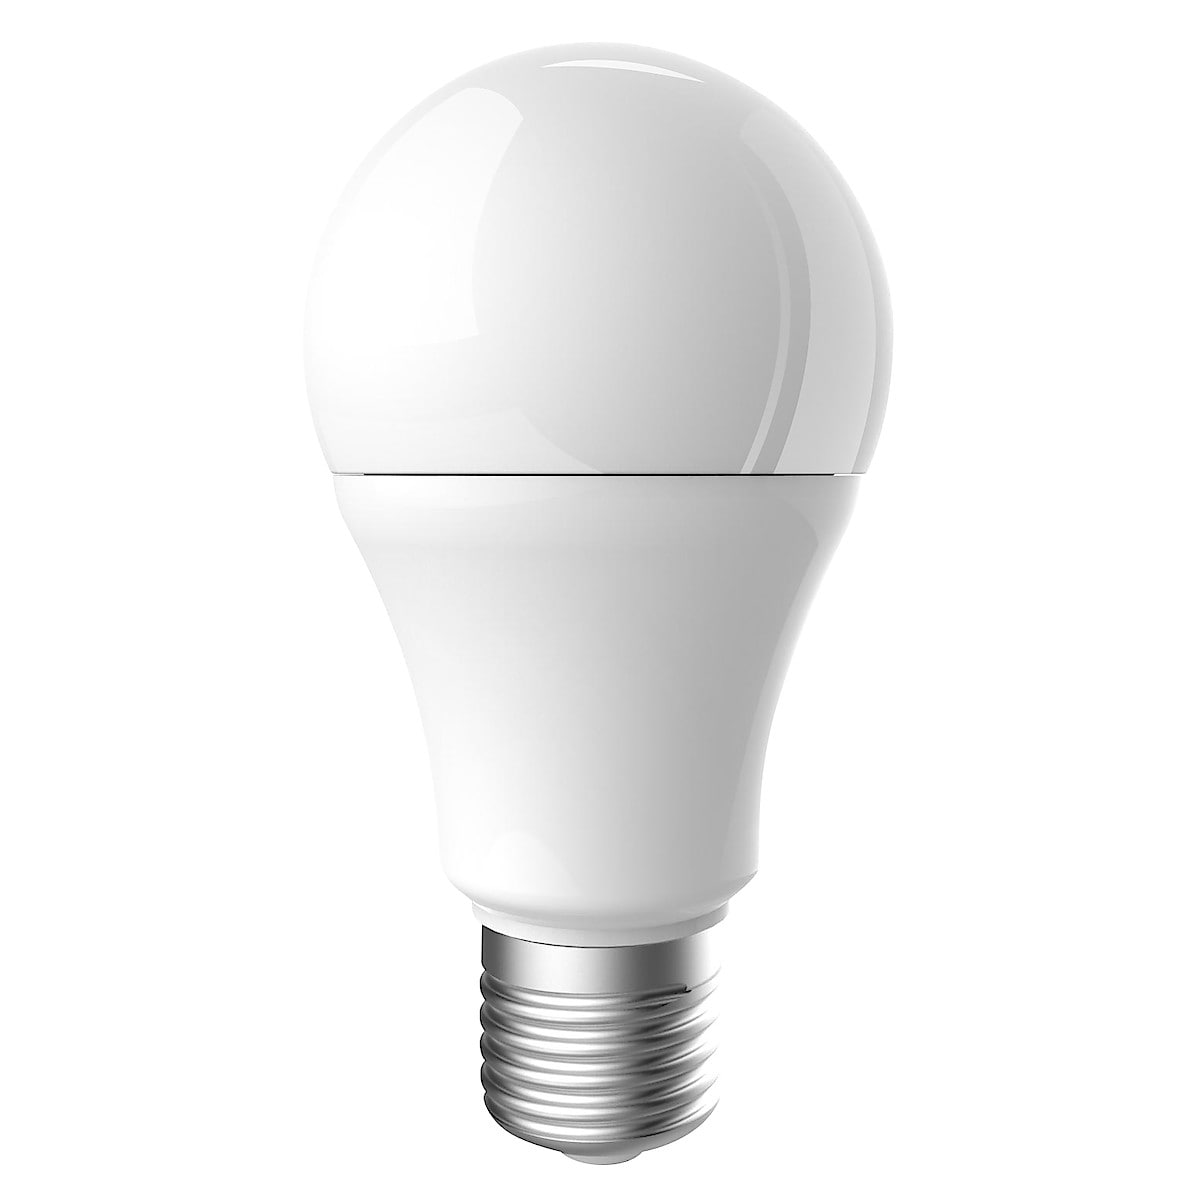 WiFi Smart Bulb E27 Clas Ohlson Home